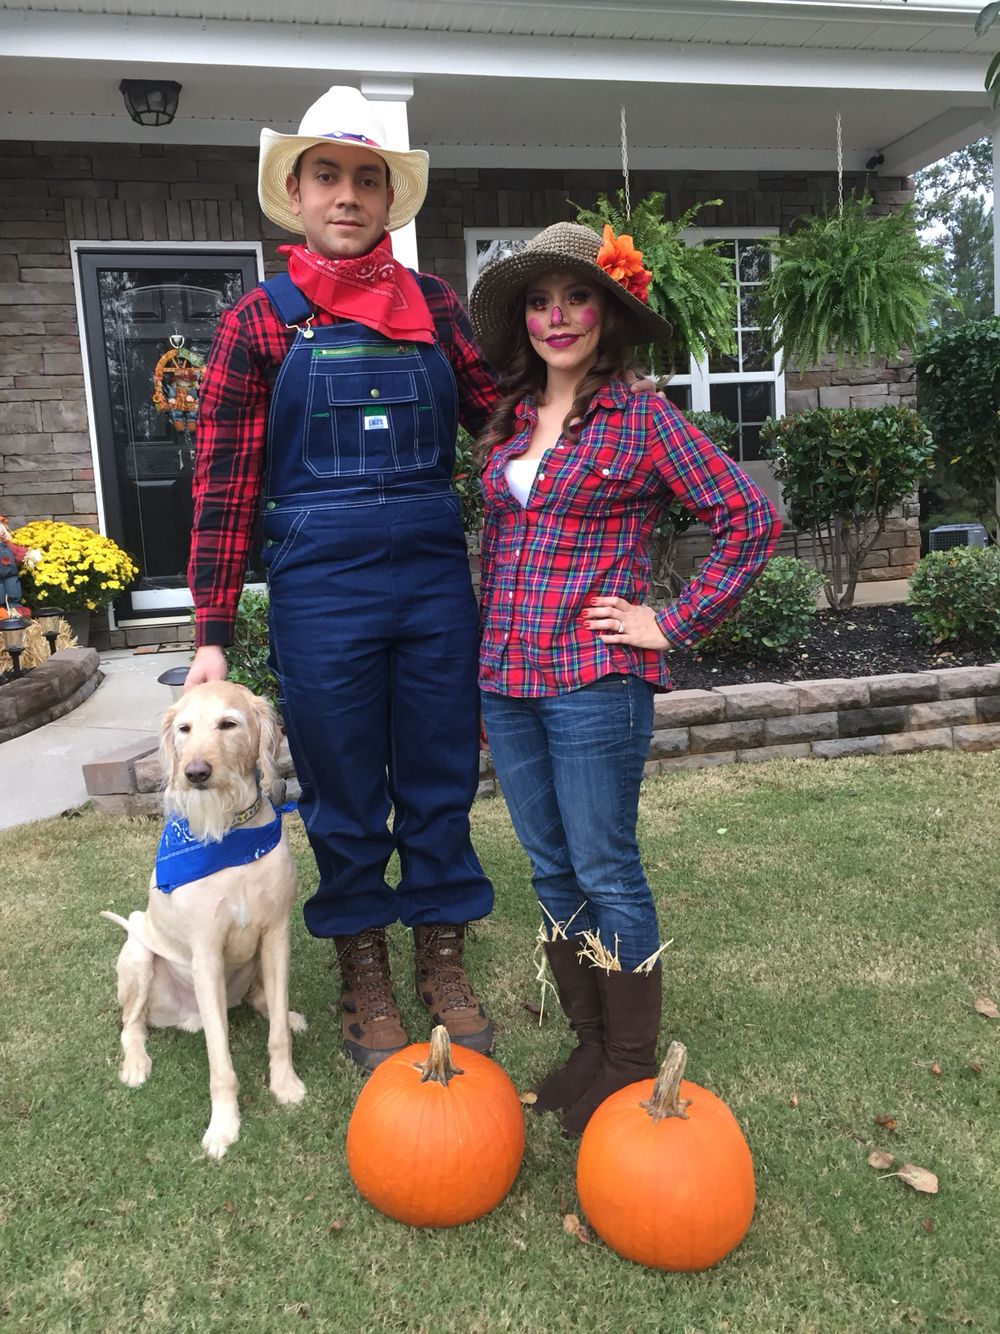 Farmer and scarecrow costume for Halloween!!  sc 1 st  Pinterest & Farmer and scarecrow costume for Halloween!! | Halloween | Pinterest ...